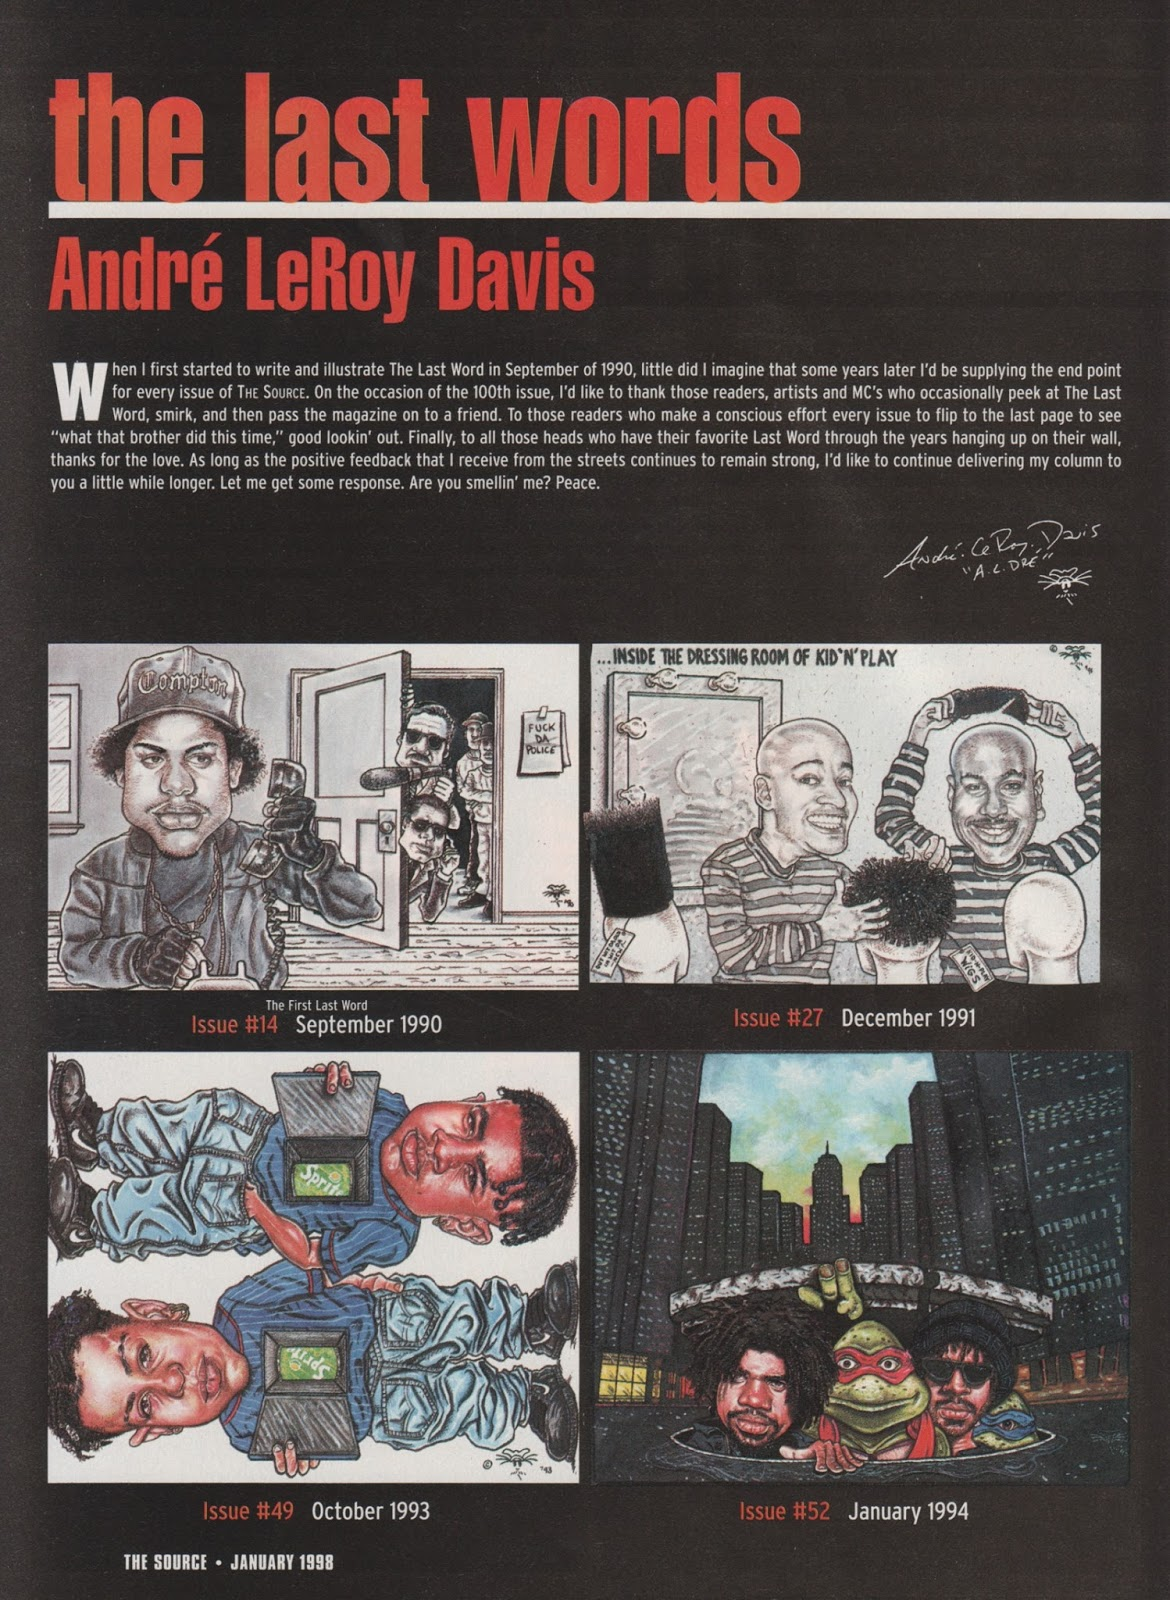 Andre LeRoy Davis 'The Last Words' (The Source, 1998)